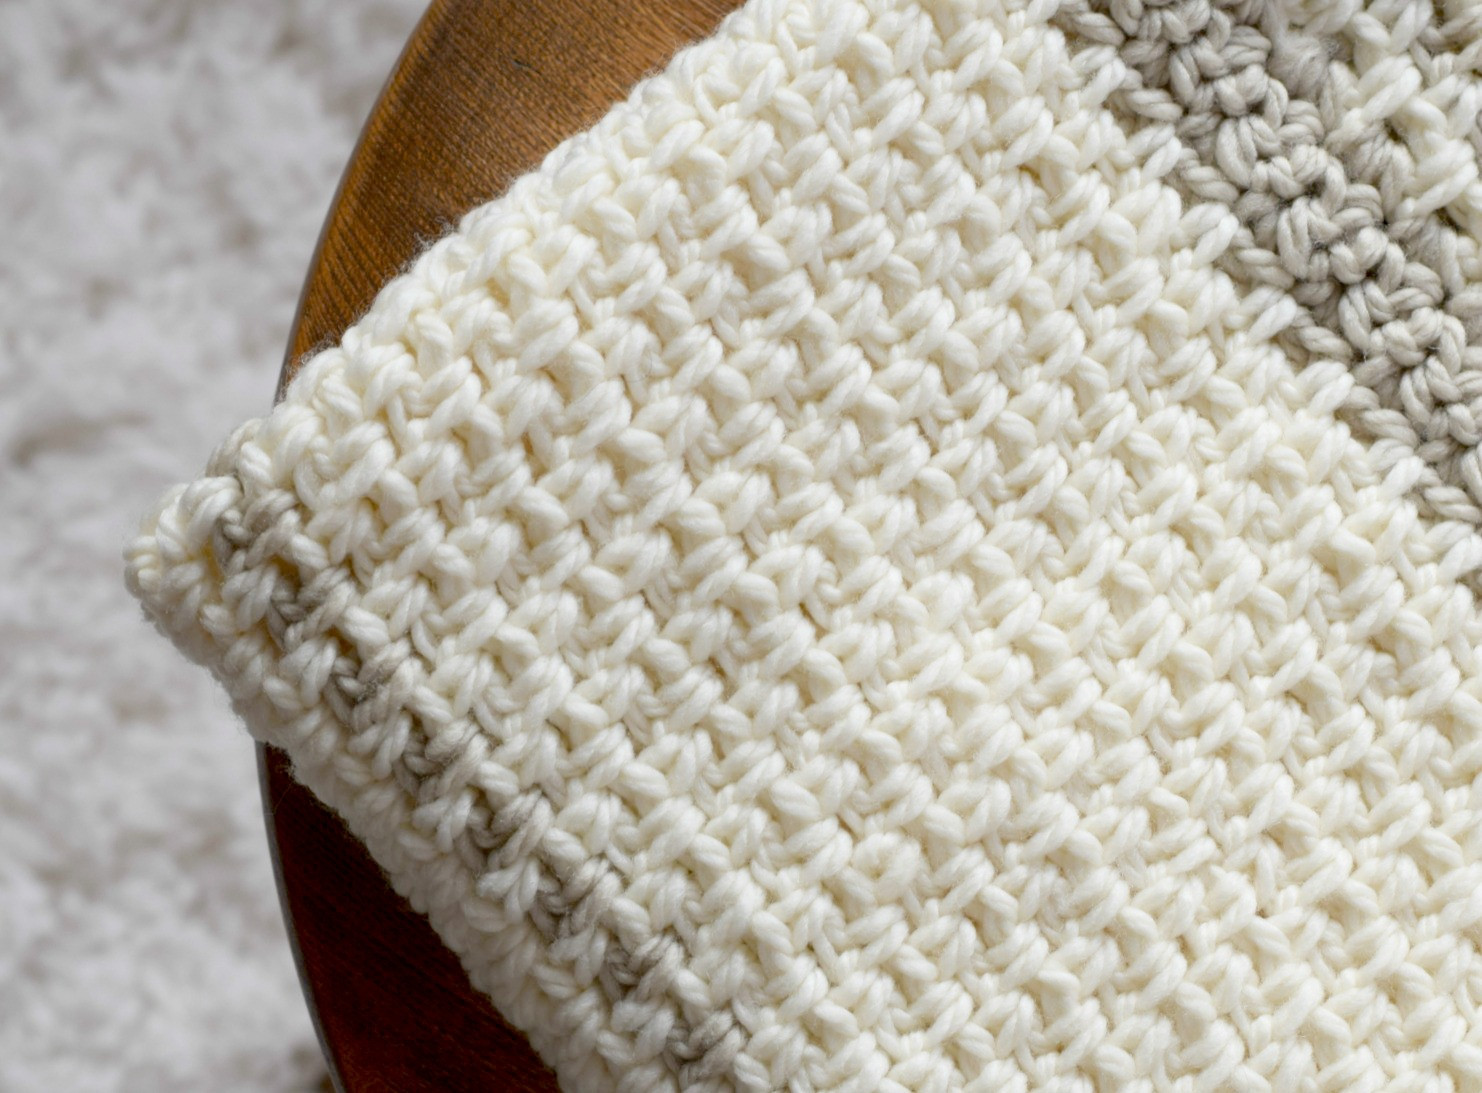 Crochet Stitches for Blankets Lovely Mod Heirloom Crochet Blanket Pattern – Mama In A Stitch Of New 42 Images Crochet Stitches for Blankets